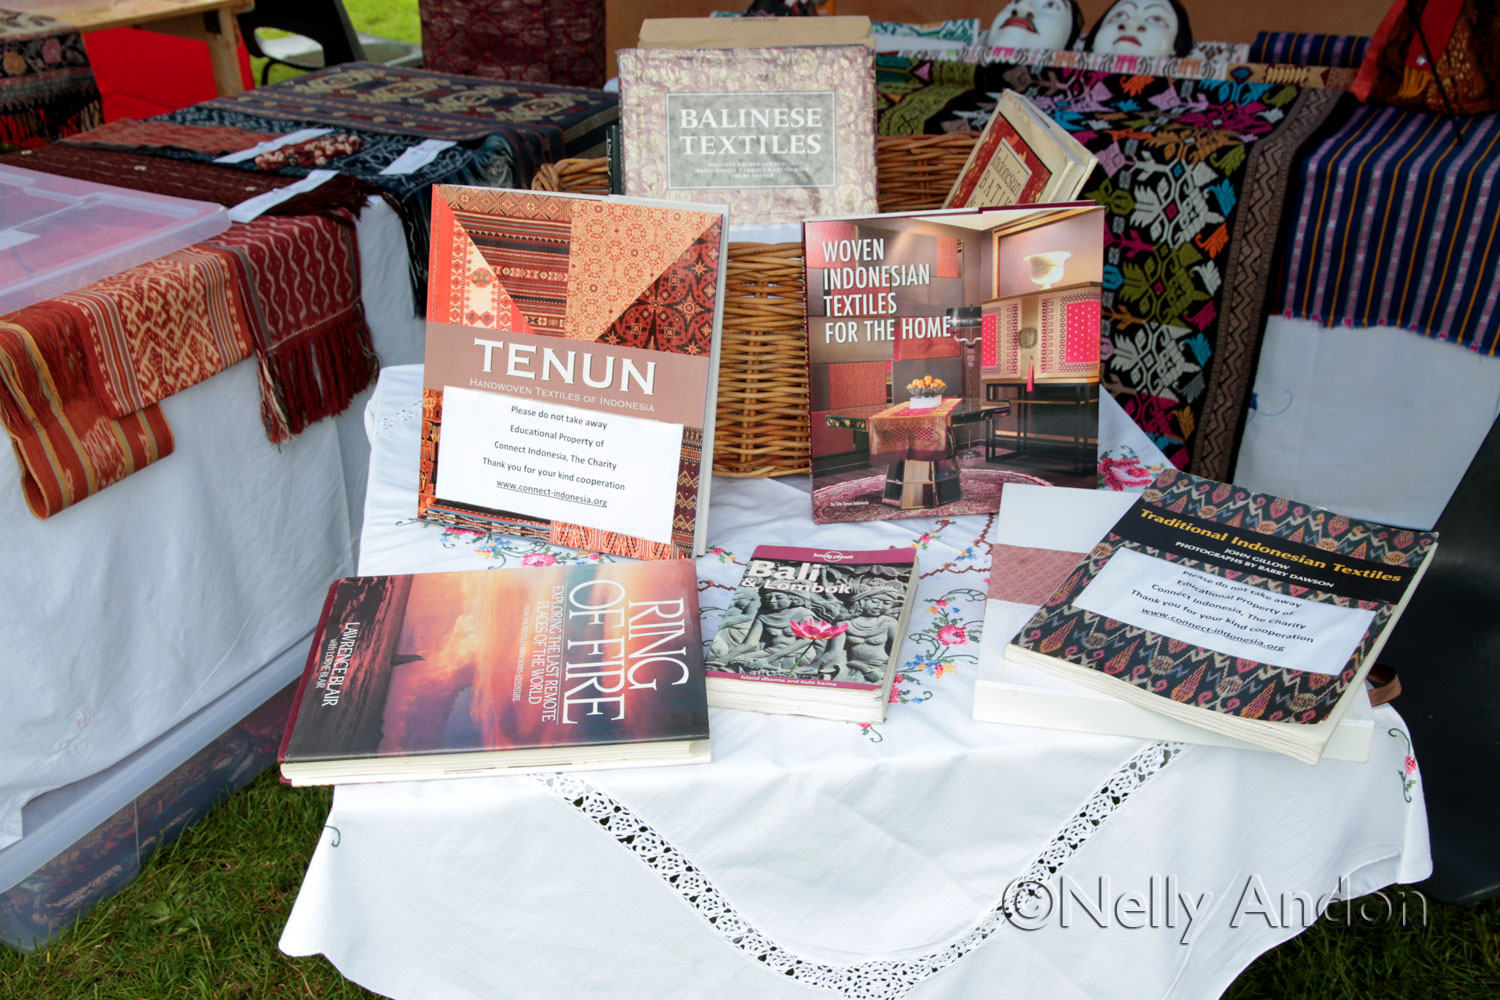 Love is not without sacrifices – our display at the wet and rainy Nottingham Festival, England, June 2014